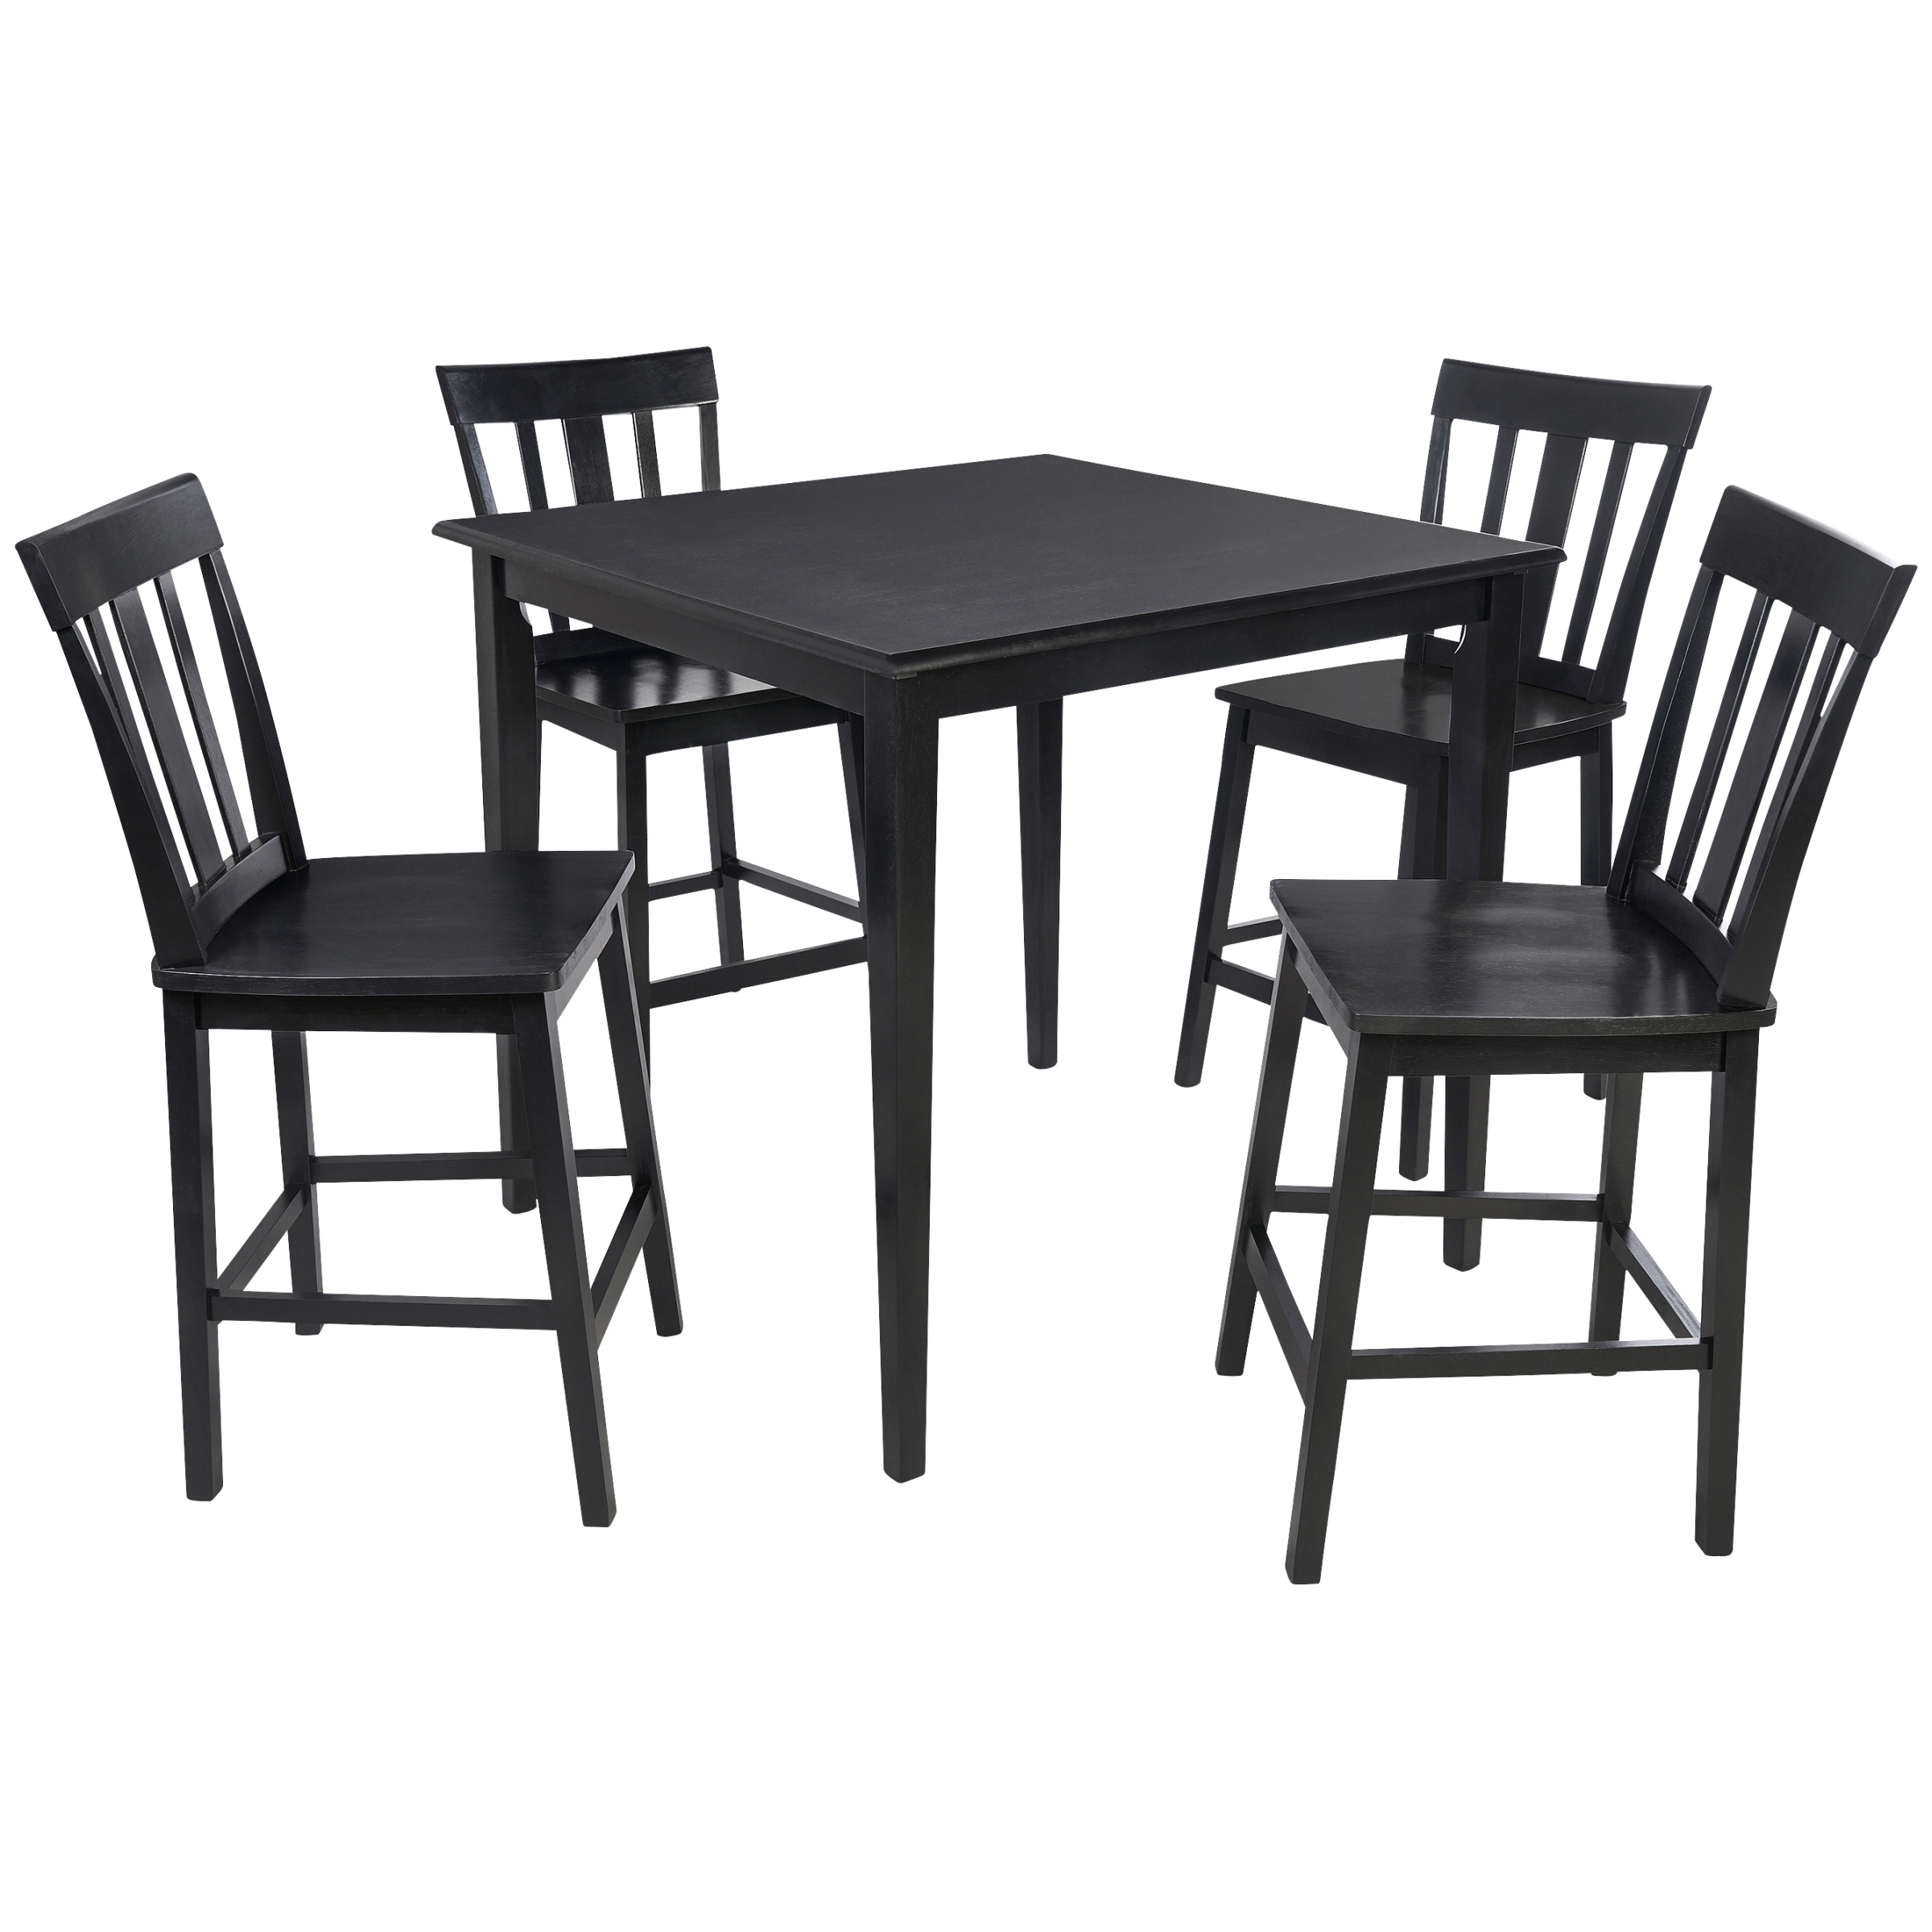 Mainstays 5 Piece Mission Counter Height Dining Set – Walmart With Best And Newest Sheetz 3 Piece Counter Height Dining Sets (View 18 of 20)